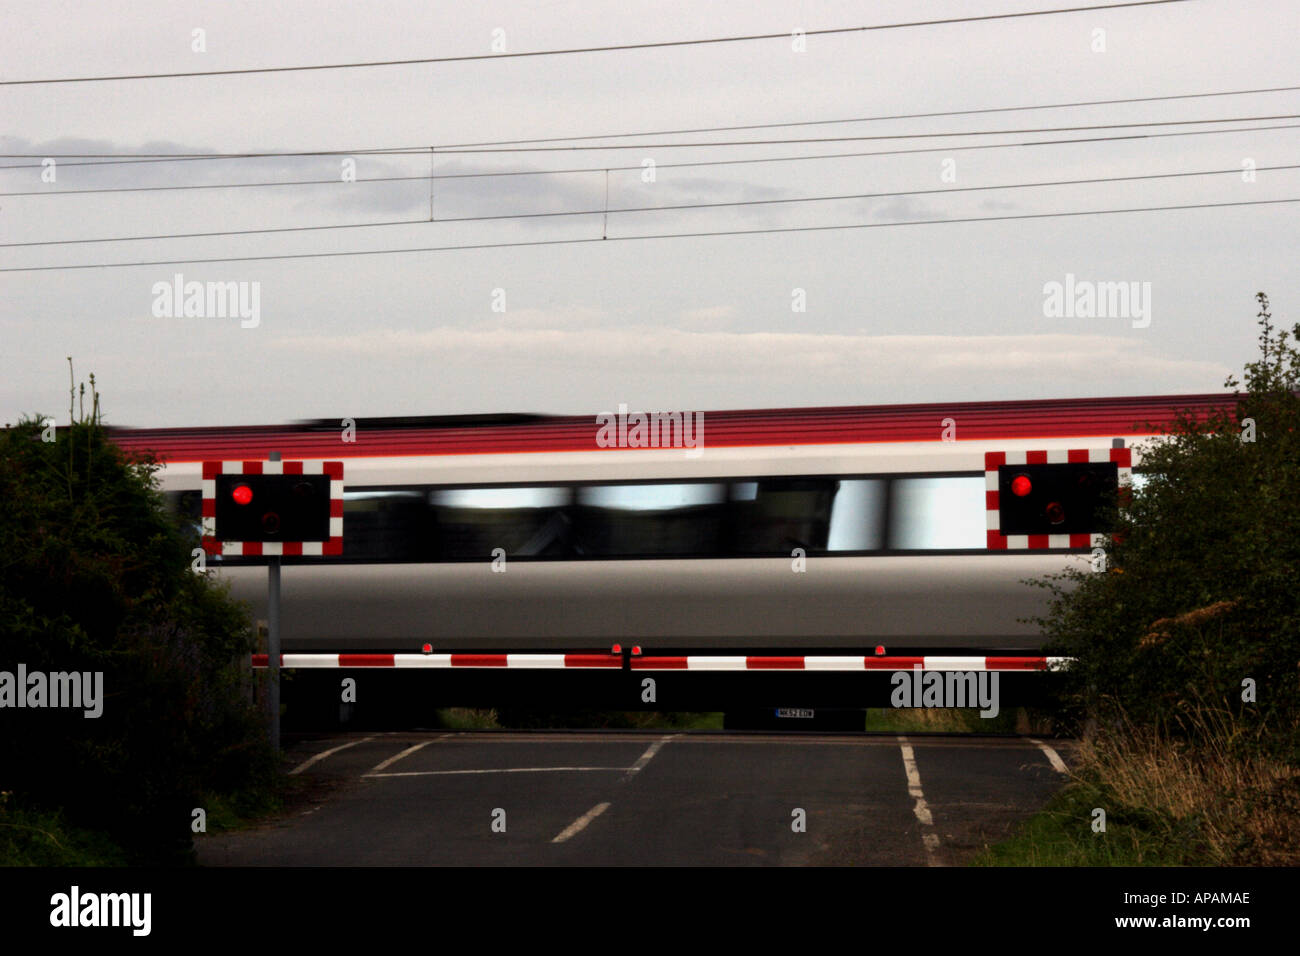 Inter-City Train Crosses a level crossing on the East Coast Main Line in Northumberland - Stock Image